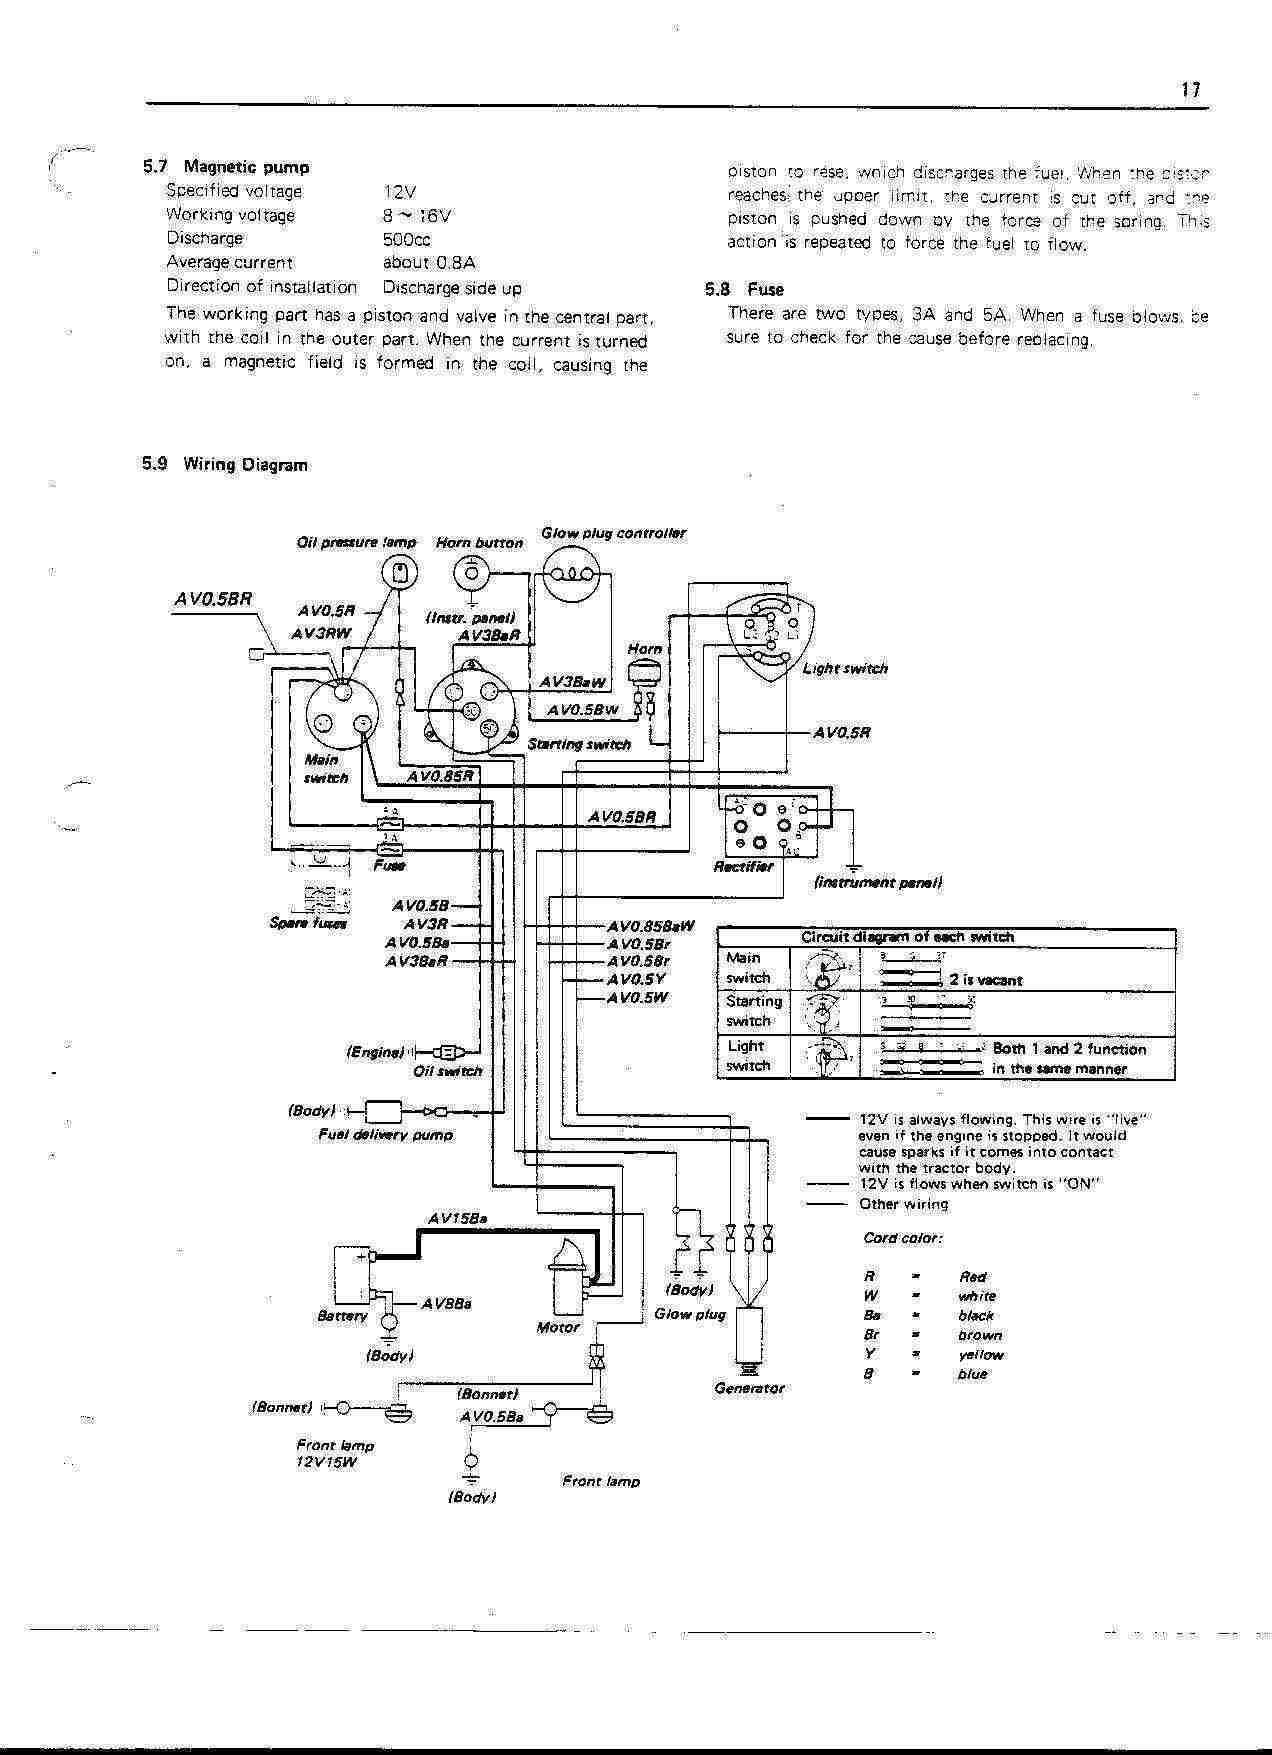 kubota wiring diagram pdf | free wiring diagram electrical wiring diagrams pdf